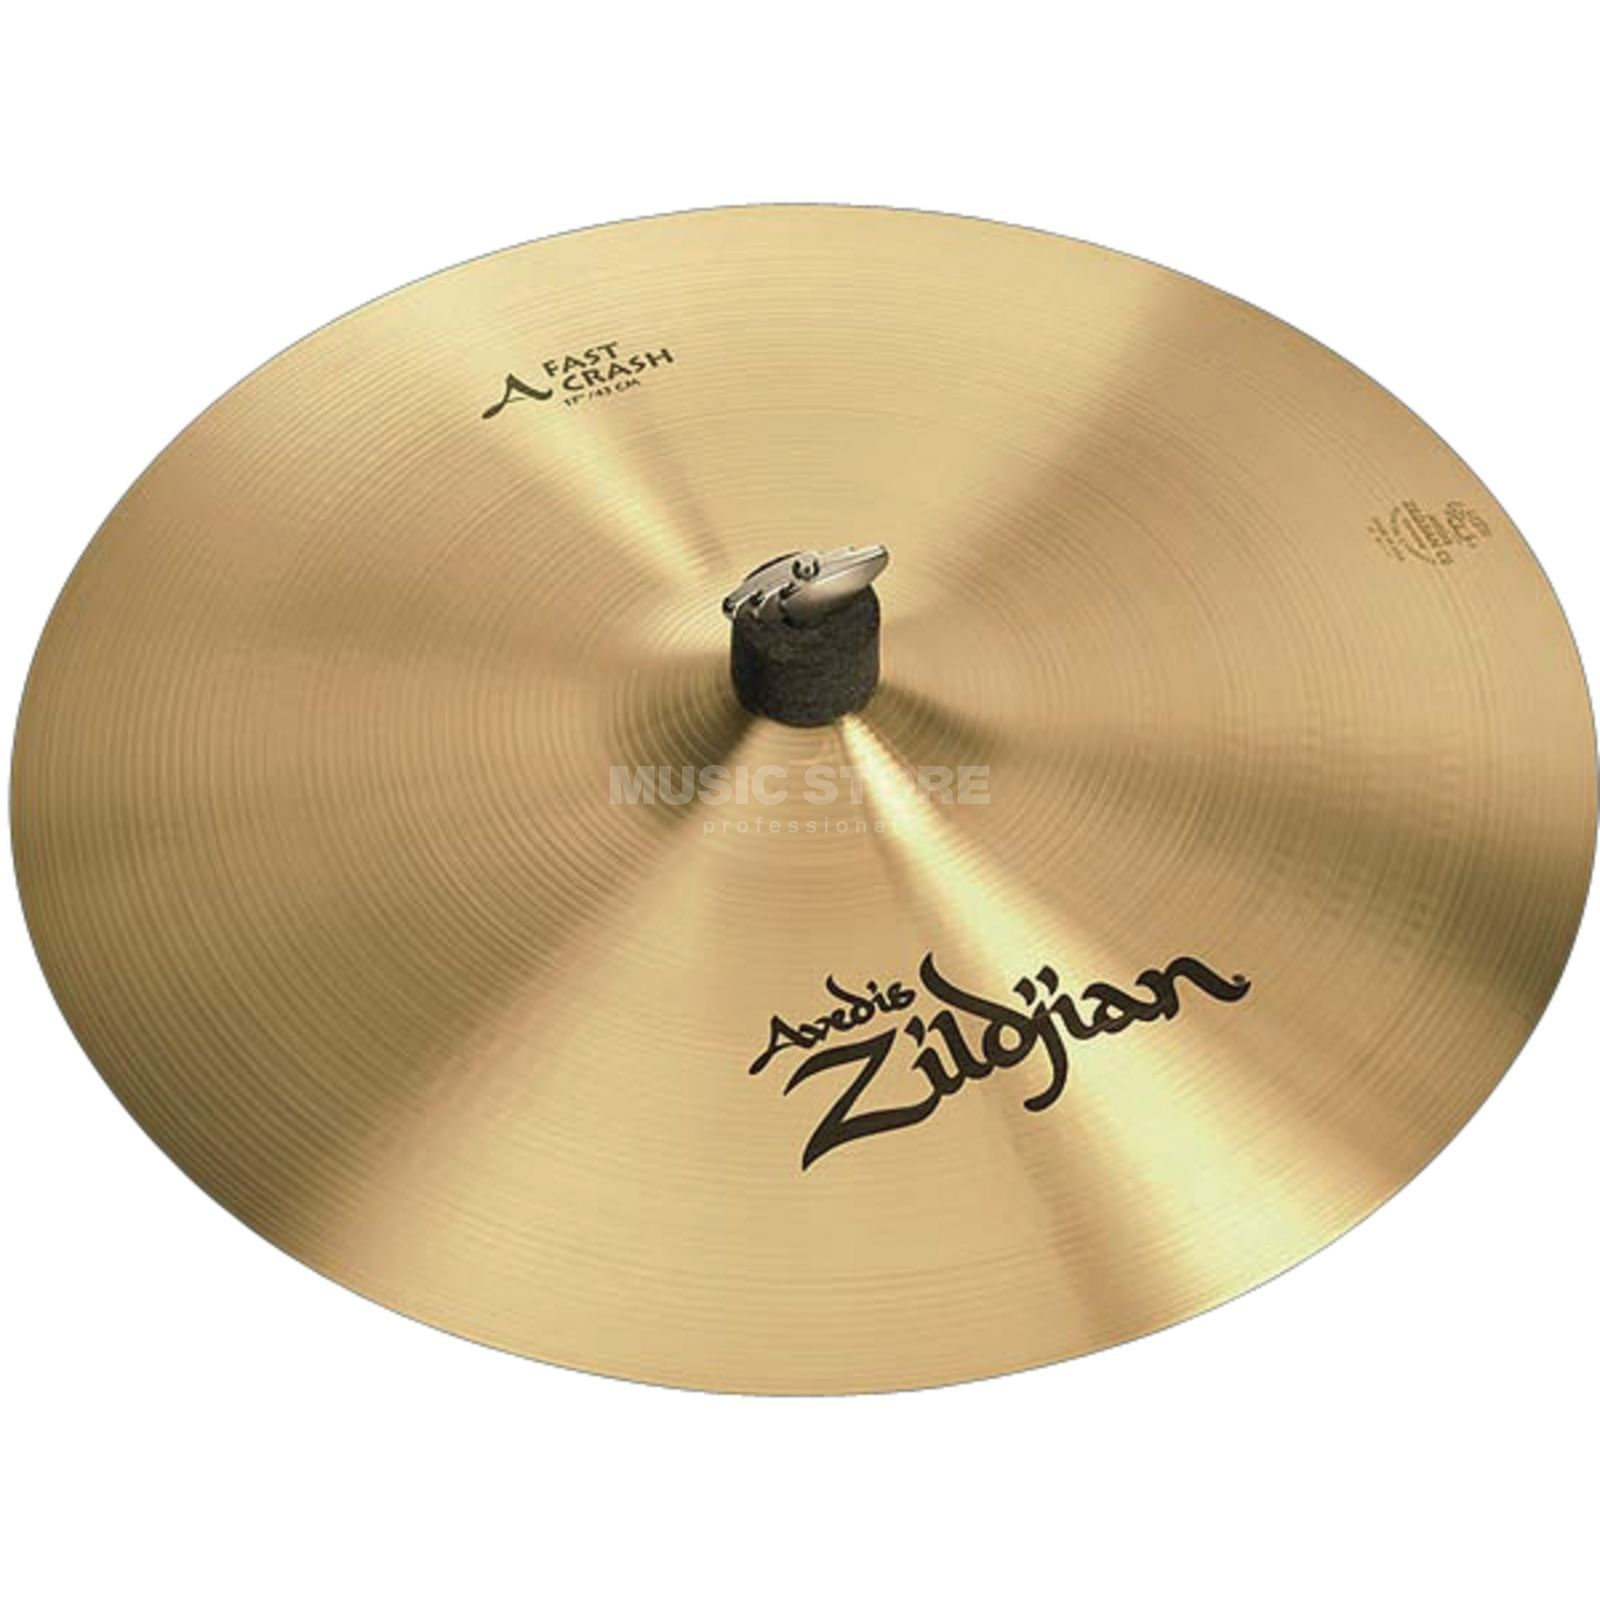 "Zildjian Avedis Fast Crash 17"", finition traditionnelle Image du produit"